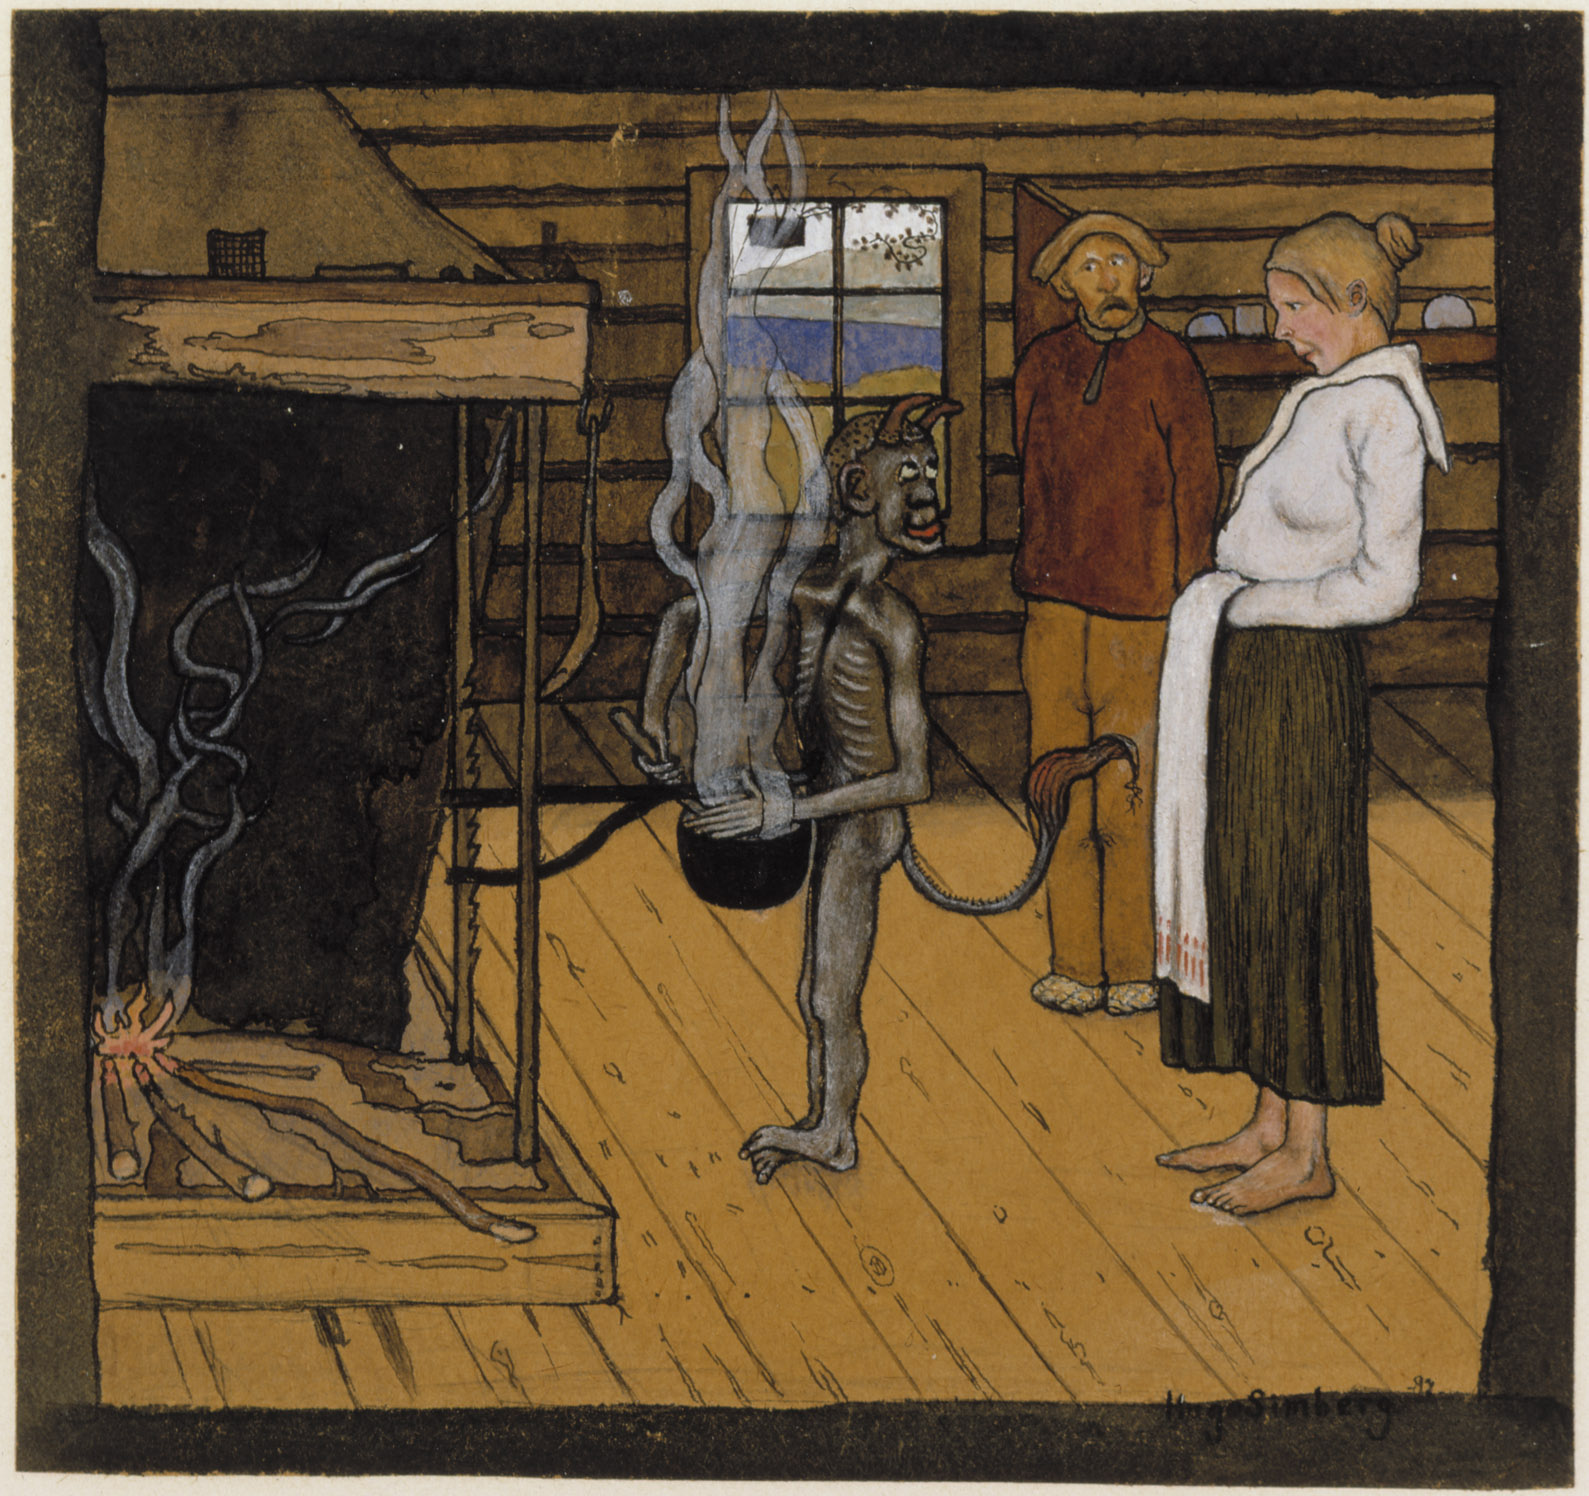 https://upload.wikimedia.org/wikipedia/commons/c/cf/Simberg_devil_pot.jpg